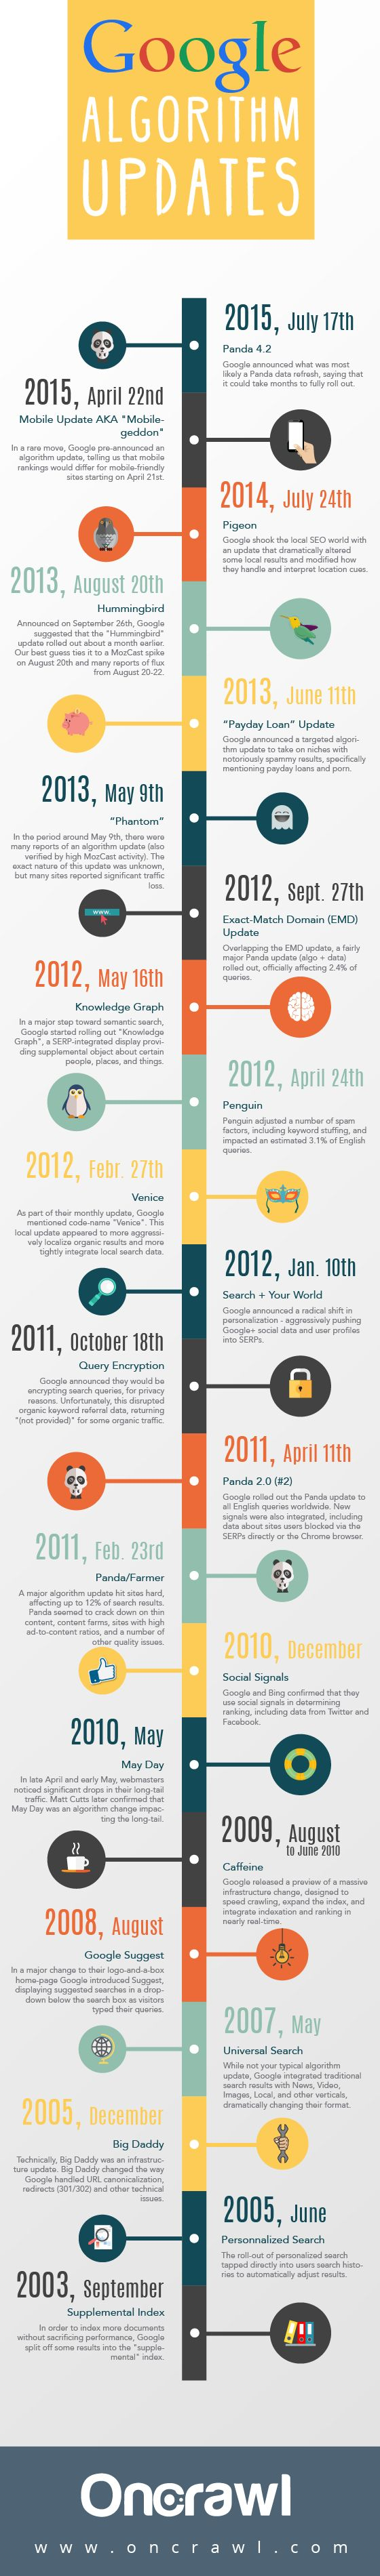 Google Algorithm Updates - 2003 to 2015 [Infographic] | Social Media Today